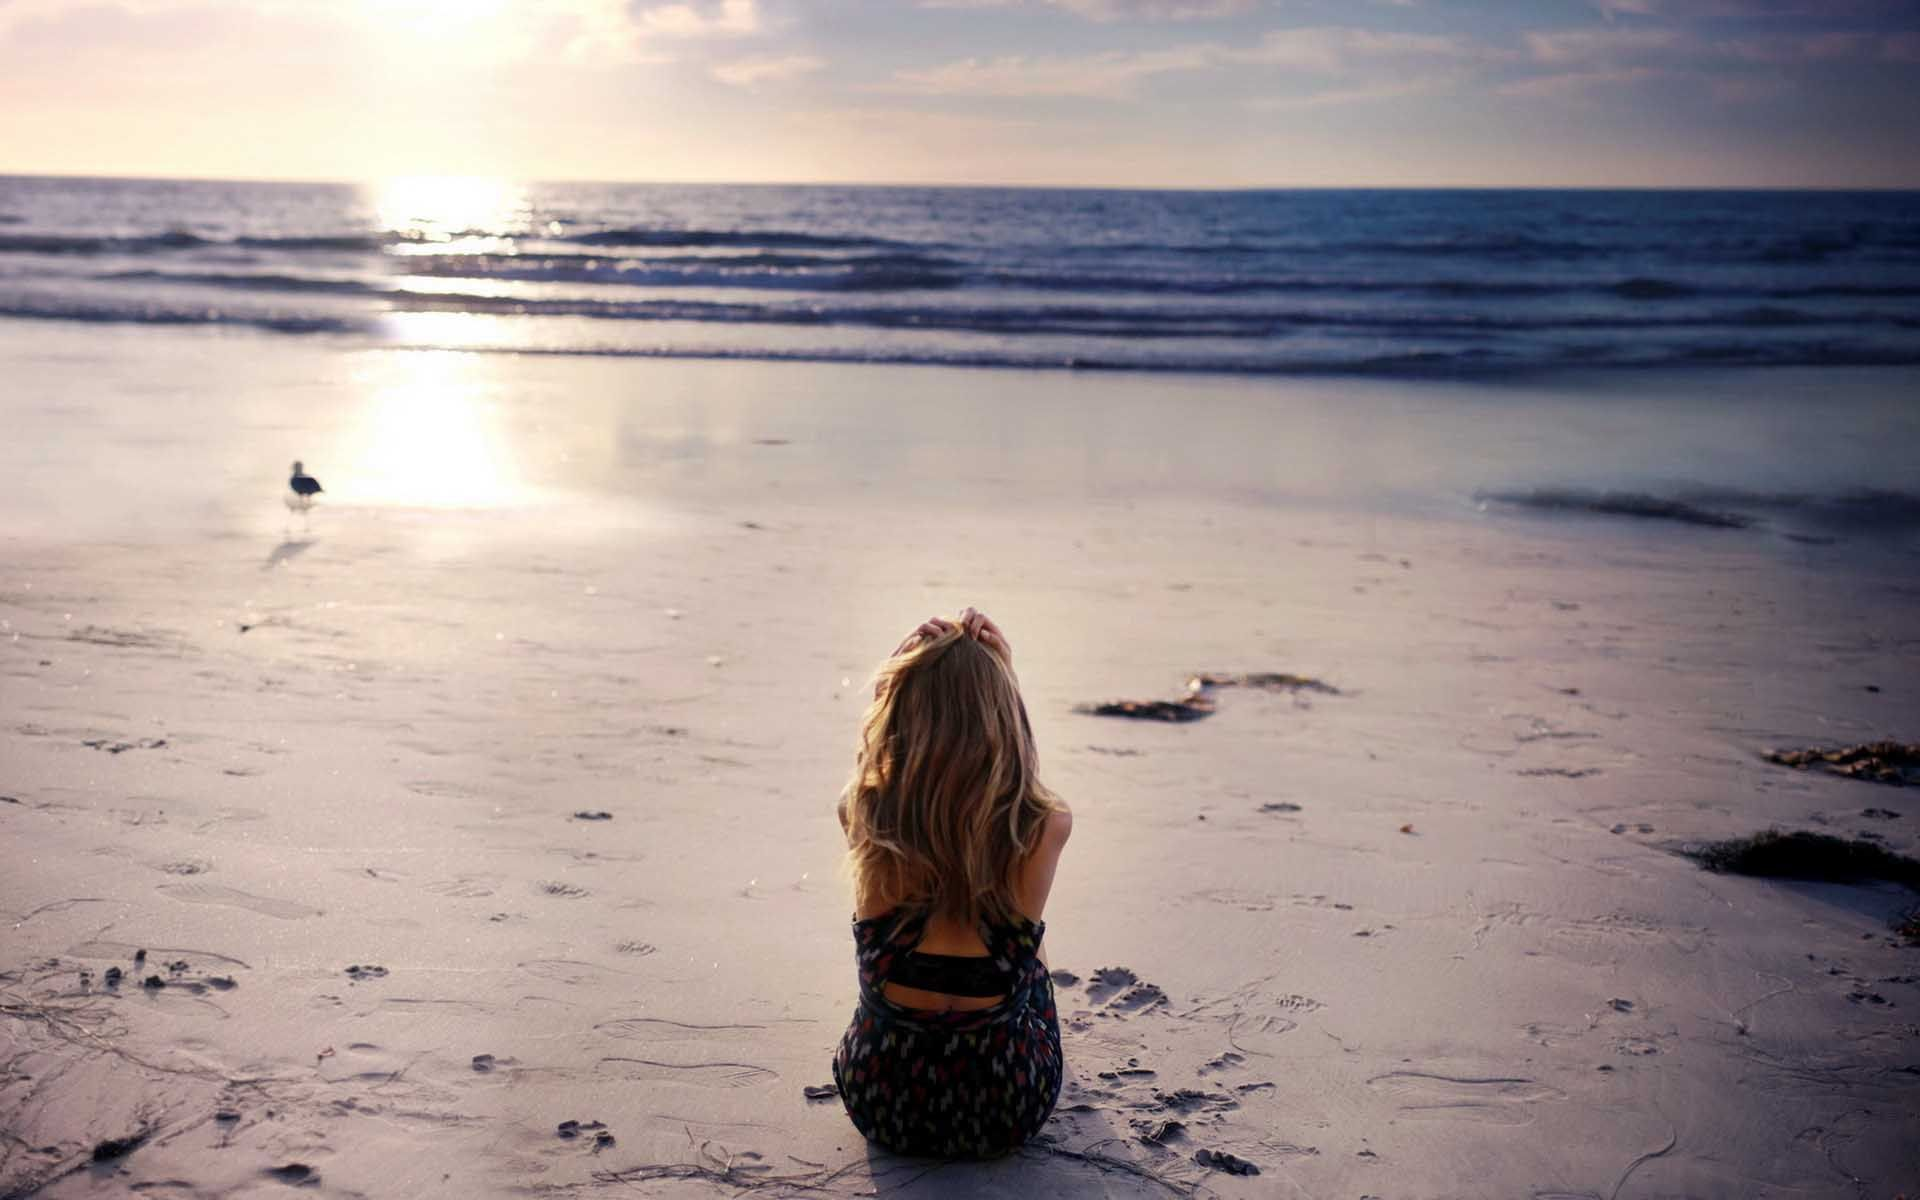 Alone Hd Wallpaper Free Download Sunset Girl Beach Girl